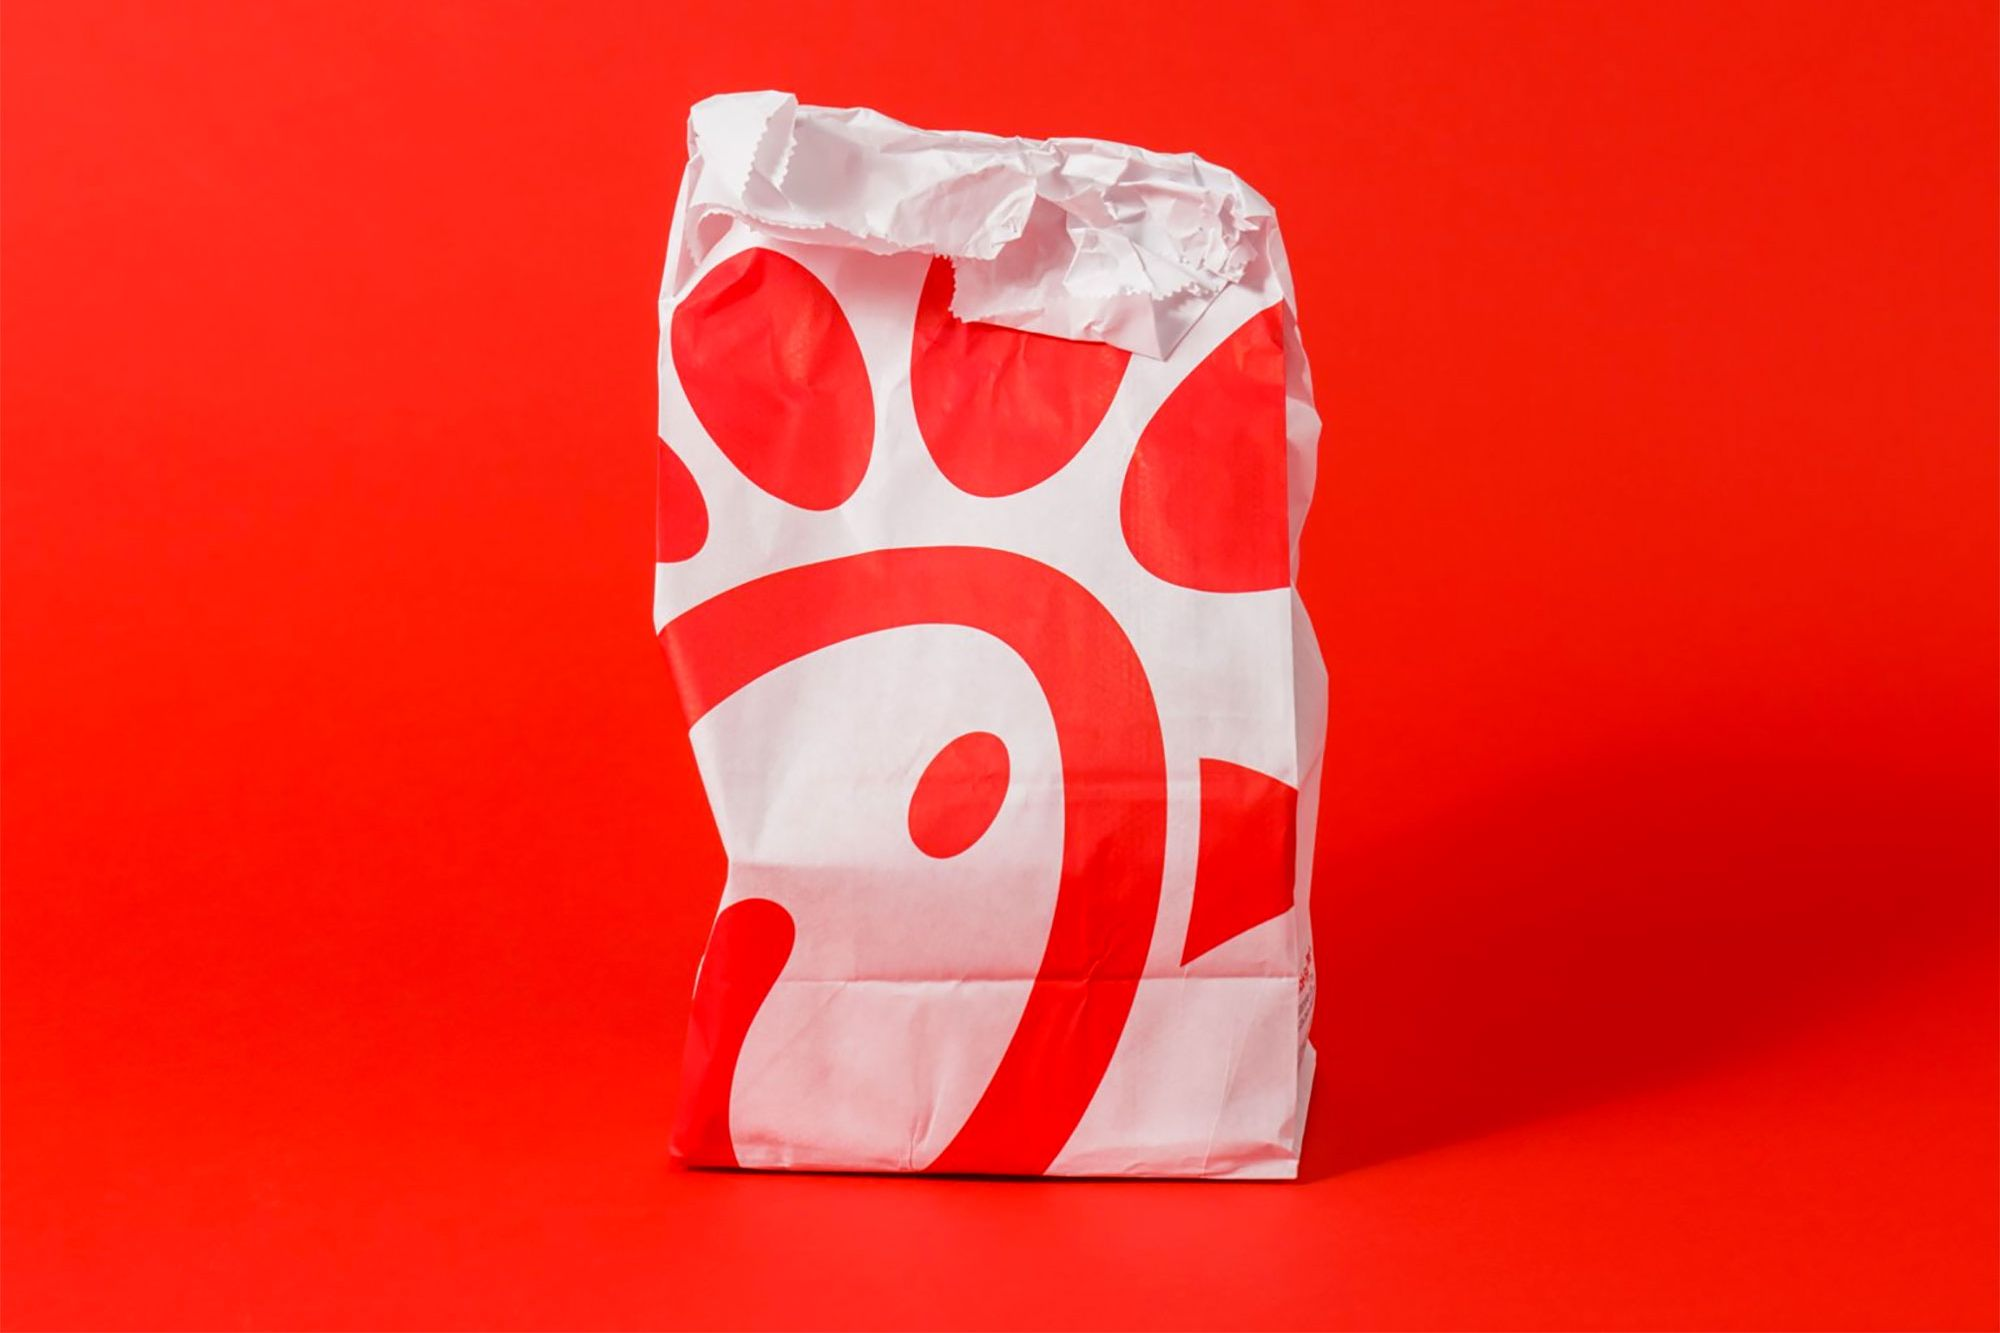 Chick-fil-A Is Now the 3rd-Largest Restaurant Chain in America, and McDonald's and Starbucks Should be Terrified